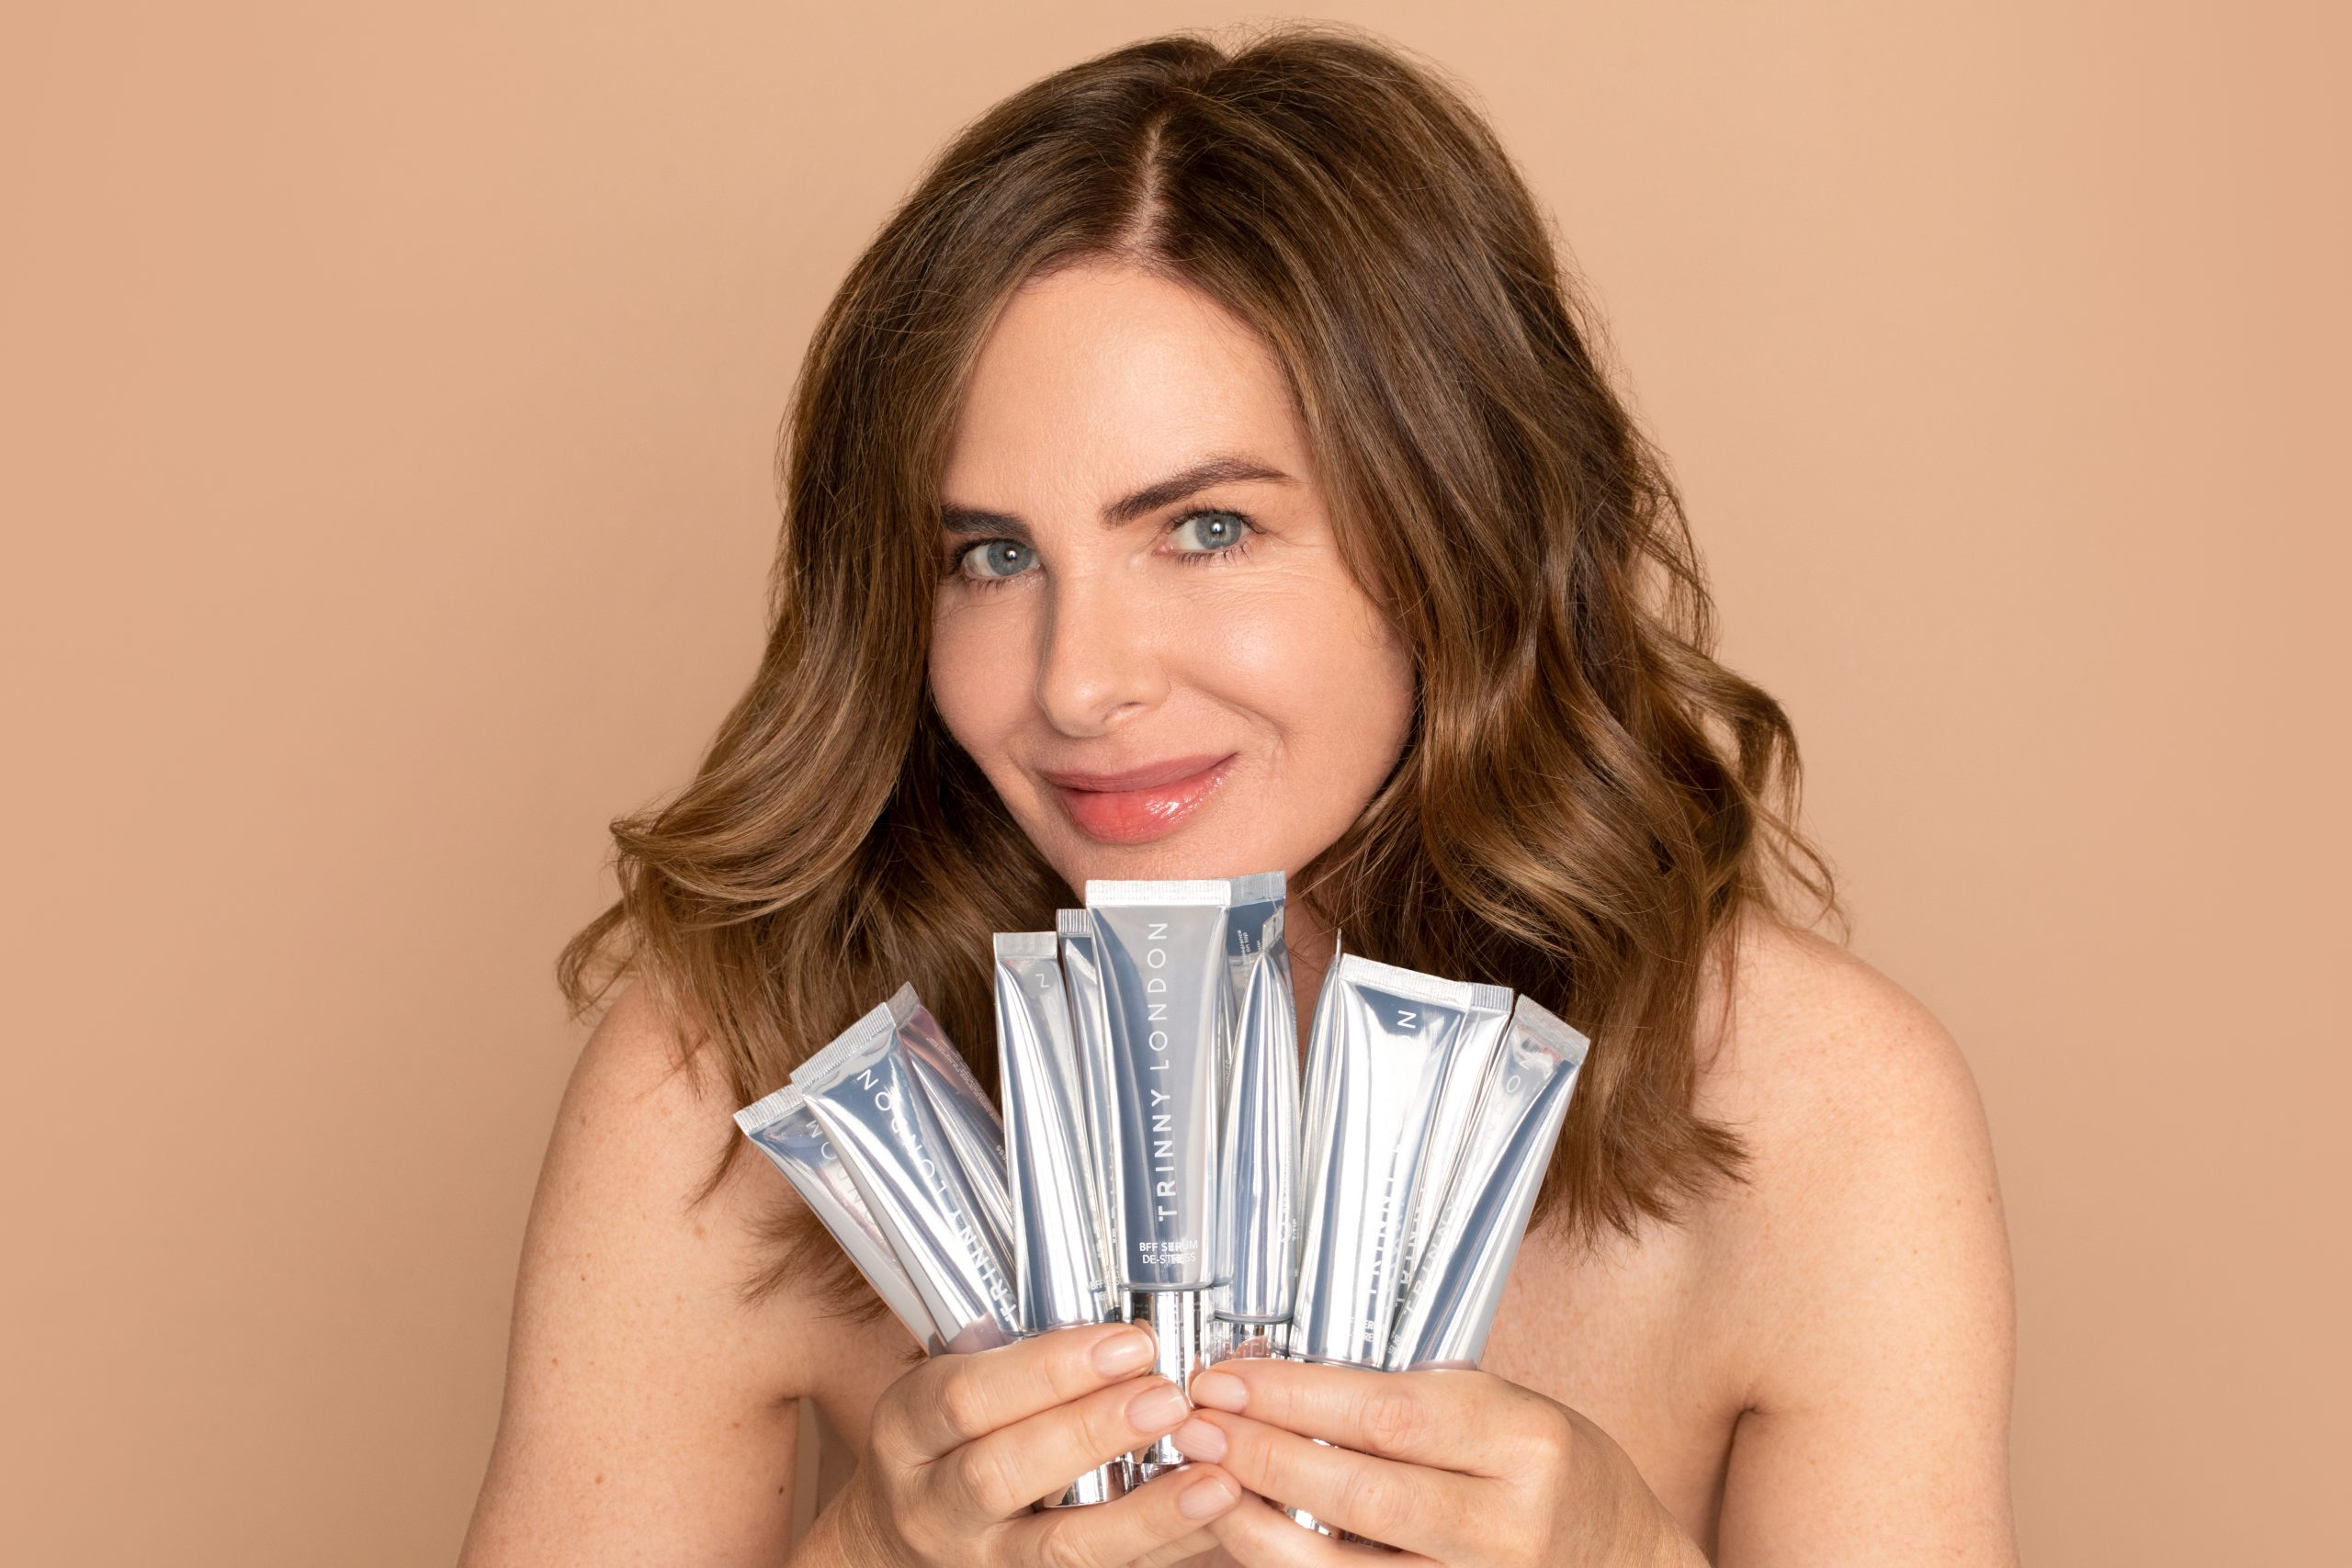 Trinny Woodall on Launching Her Makeup Empire at 53 & Her Road to Motherhood – Episode 33 of The Grace Tales Podcast